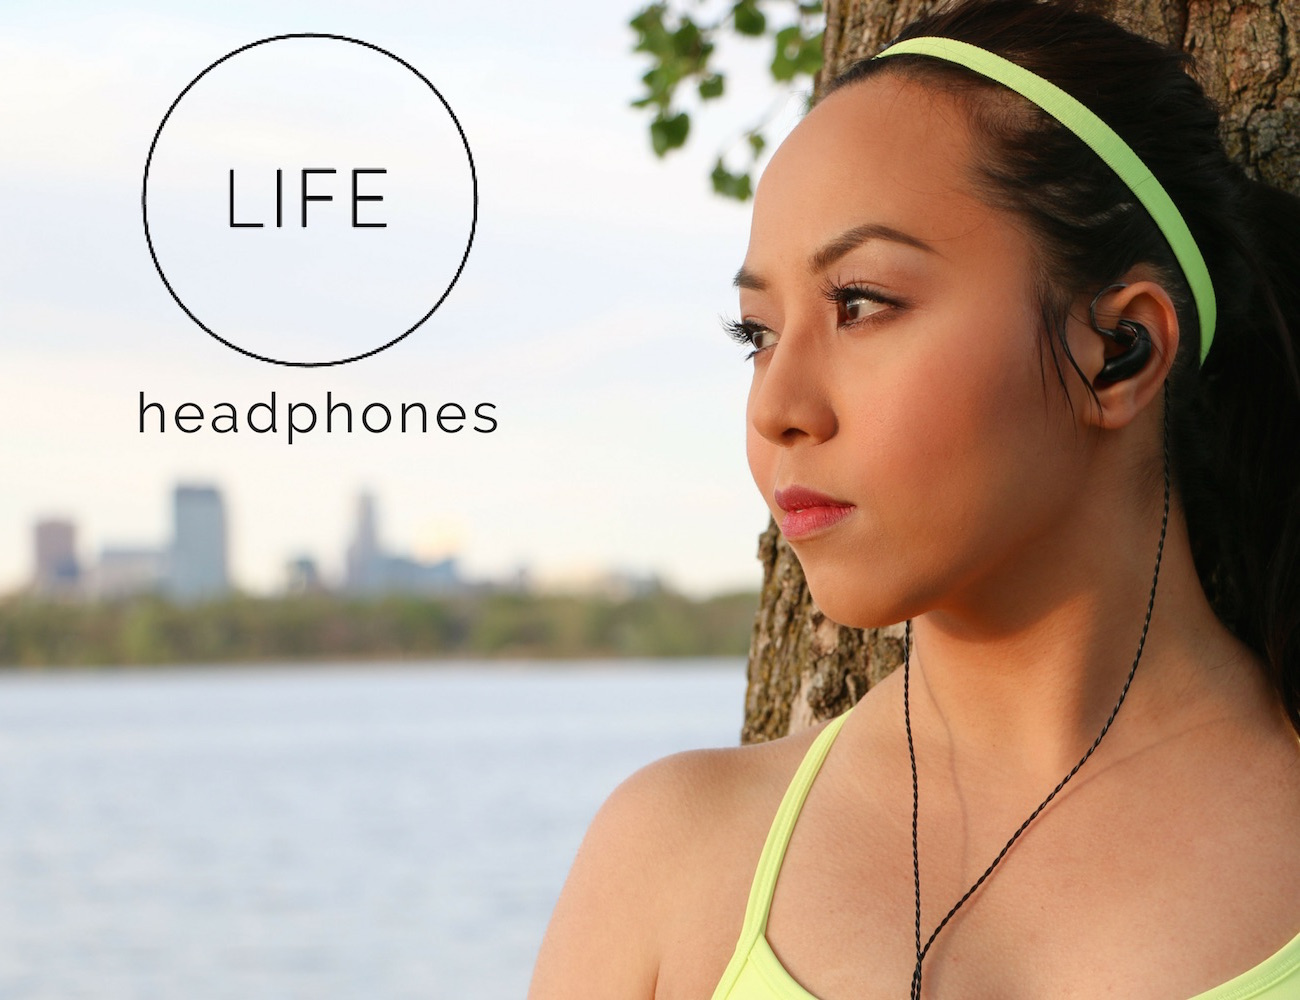 LIFE Headphones